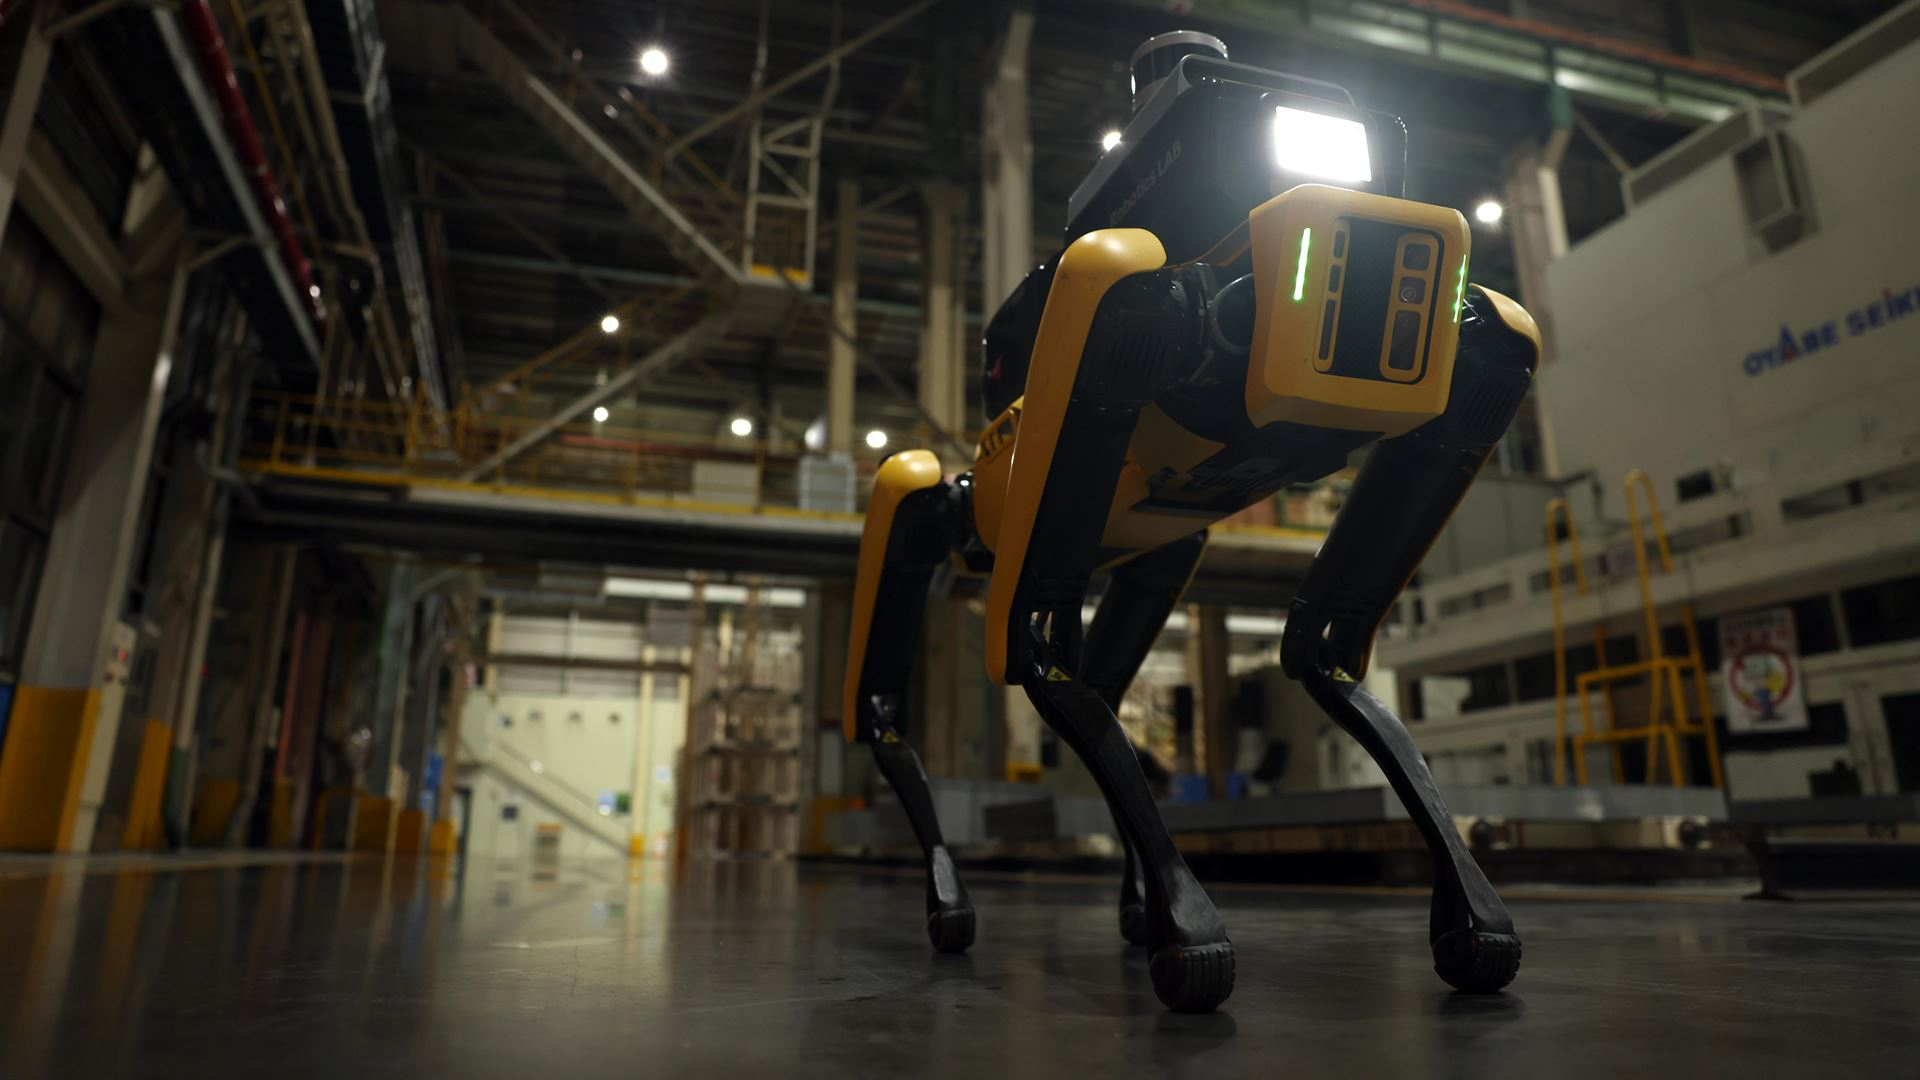 Hyundai Motor Group Launches 'Factory Safety Service Robot', First Project with Boston Dynamics, in Support of Site Safety - Image 3